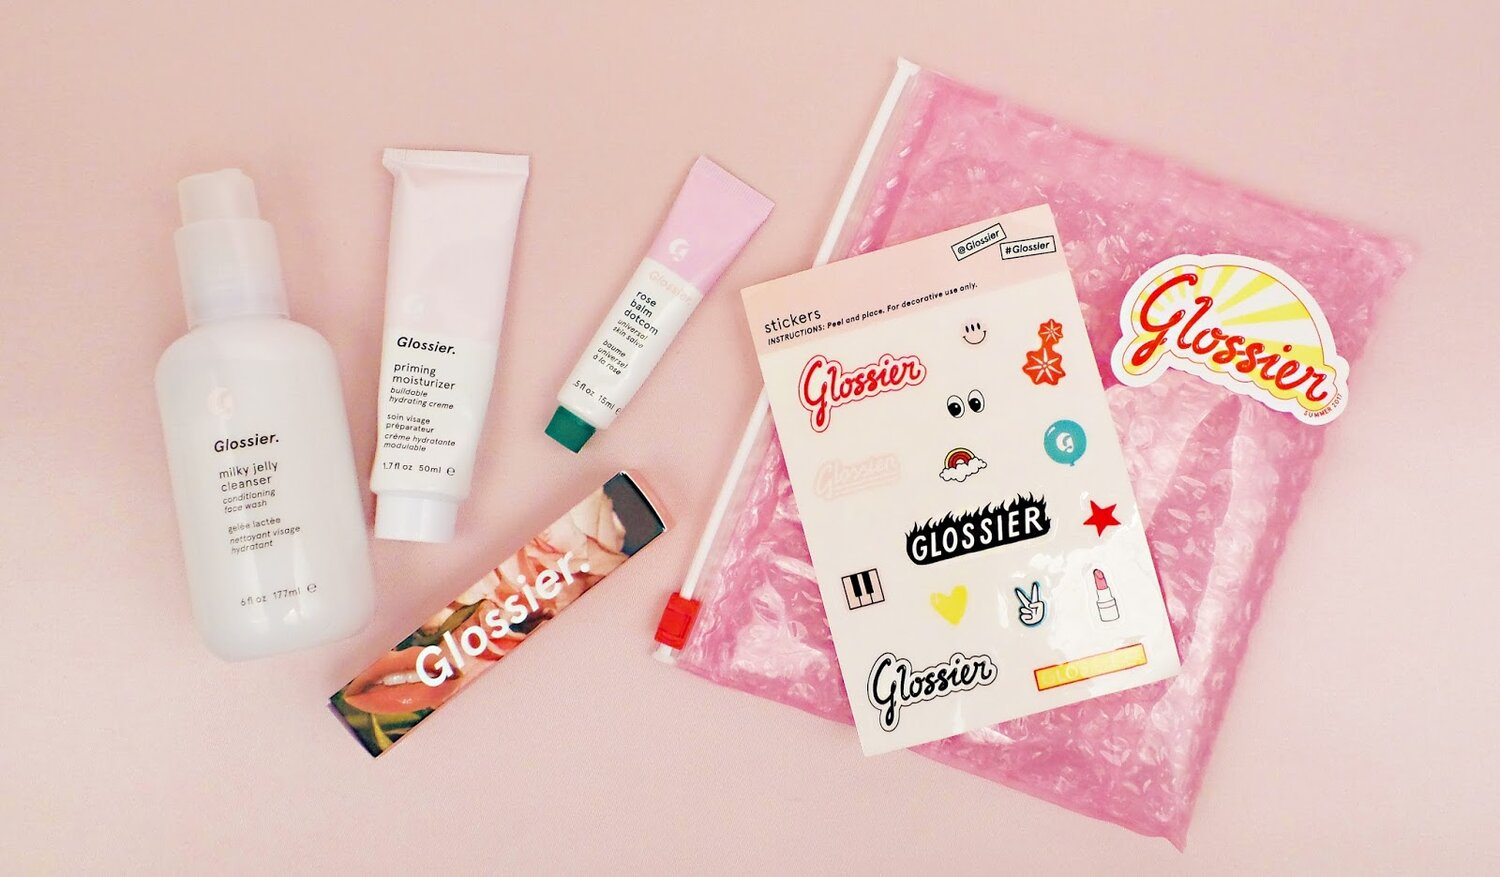 Glossier unboxing experience is fully branded and includes little gifts that feel special + relevant to the target consumer.  Source: Peppermintheart.com